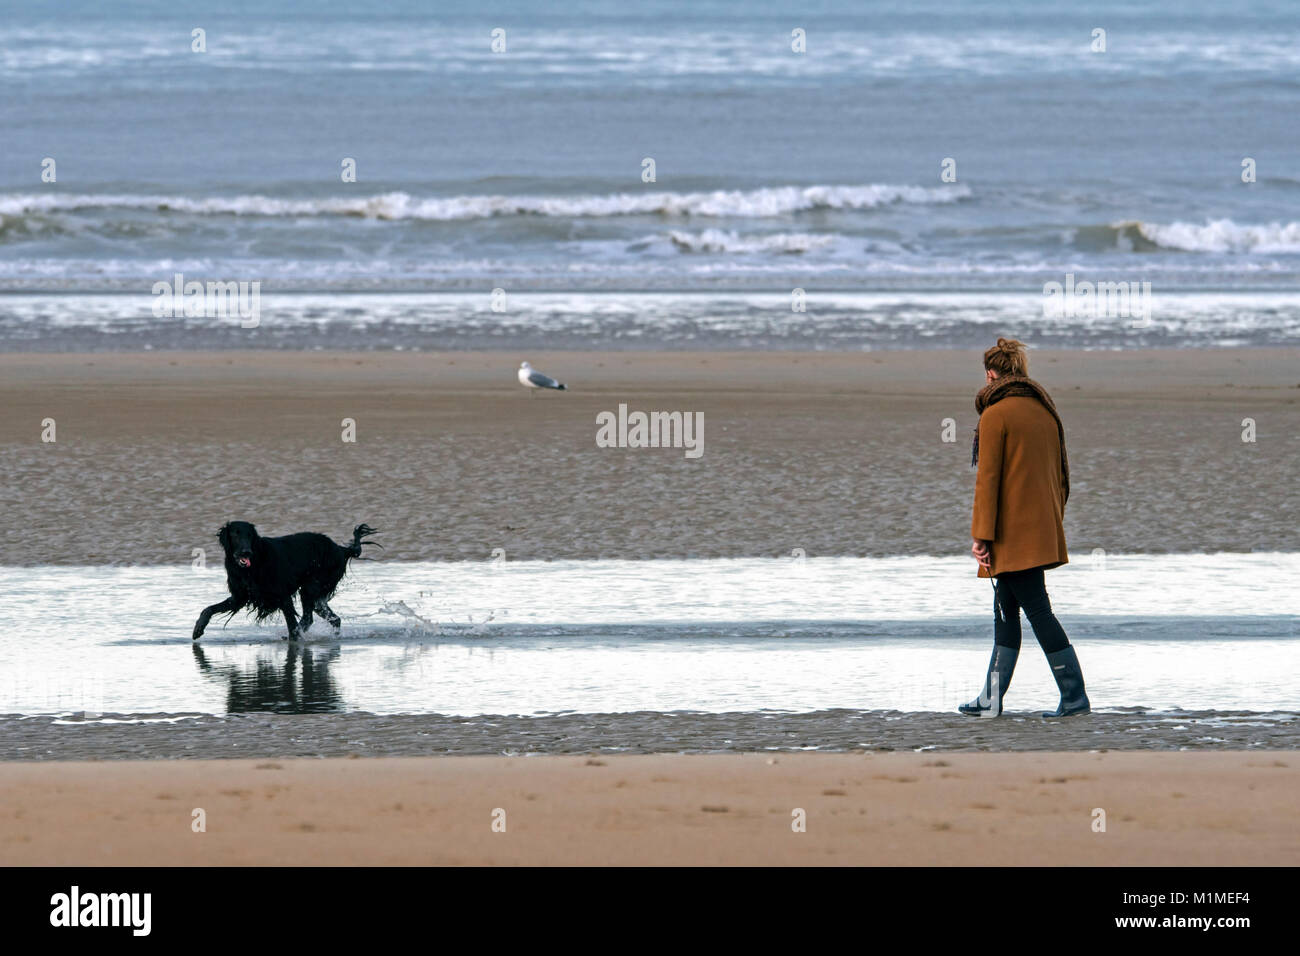 Lonely woman walking on desolate sandy beach with playful black dog running through the water along the North Sea - Stock Image